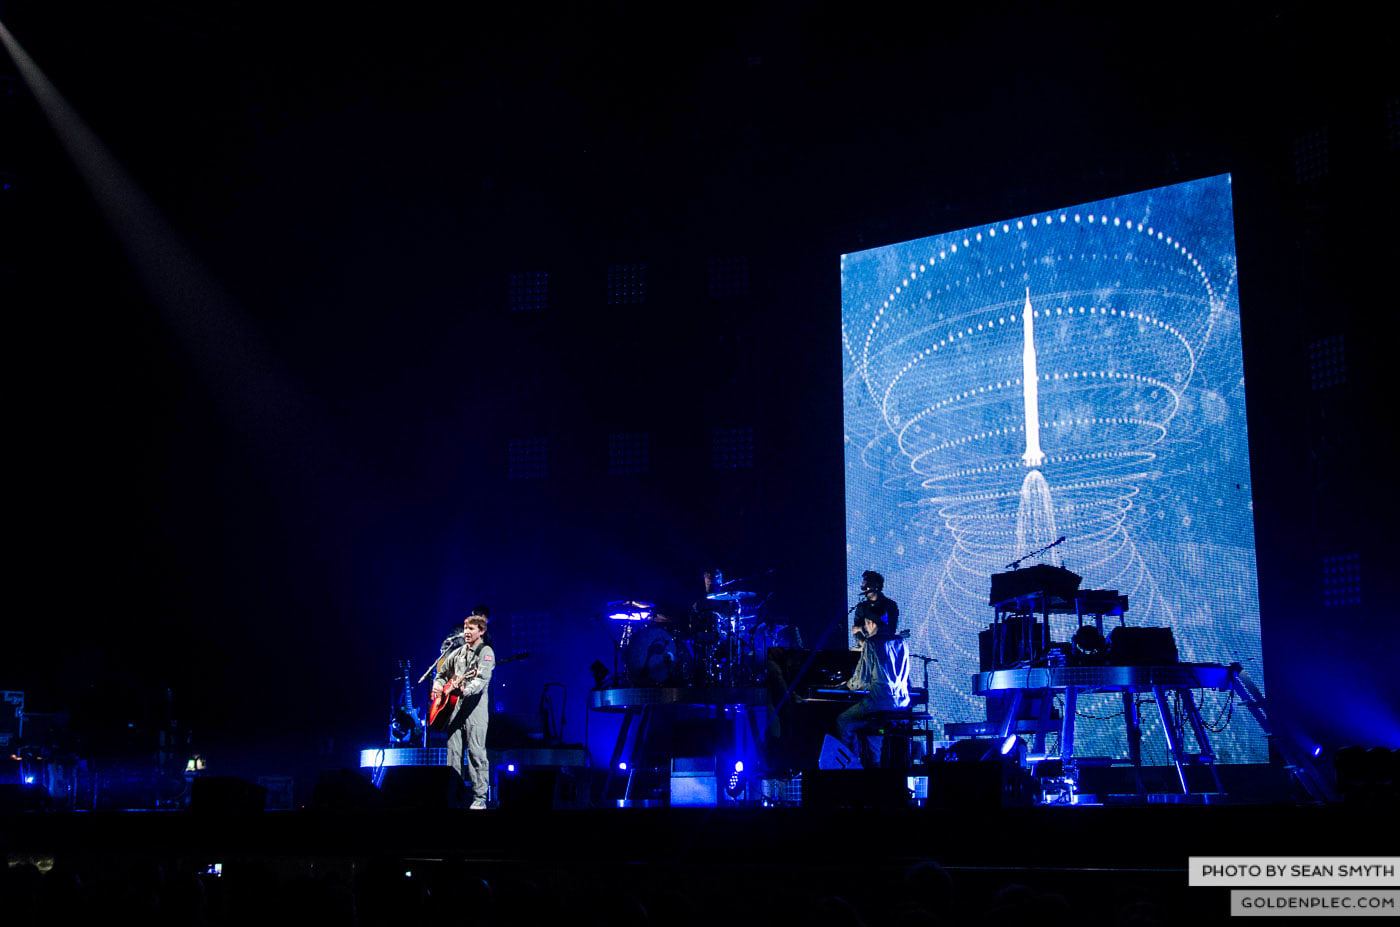 james-blunt-at-3arena-by-sean-smyth-20-11-14-21-of-29